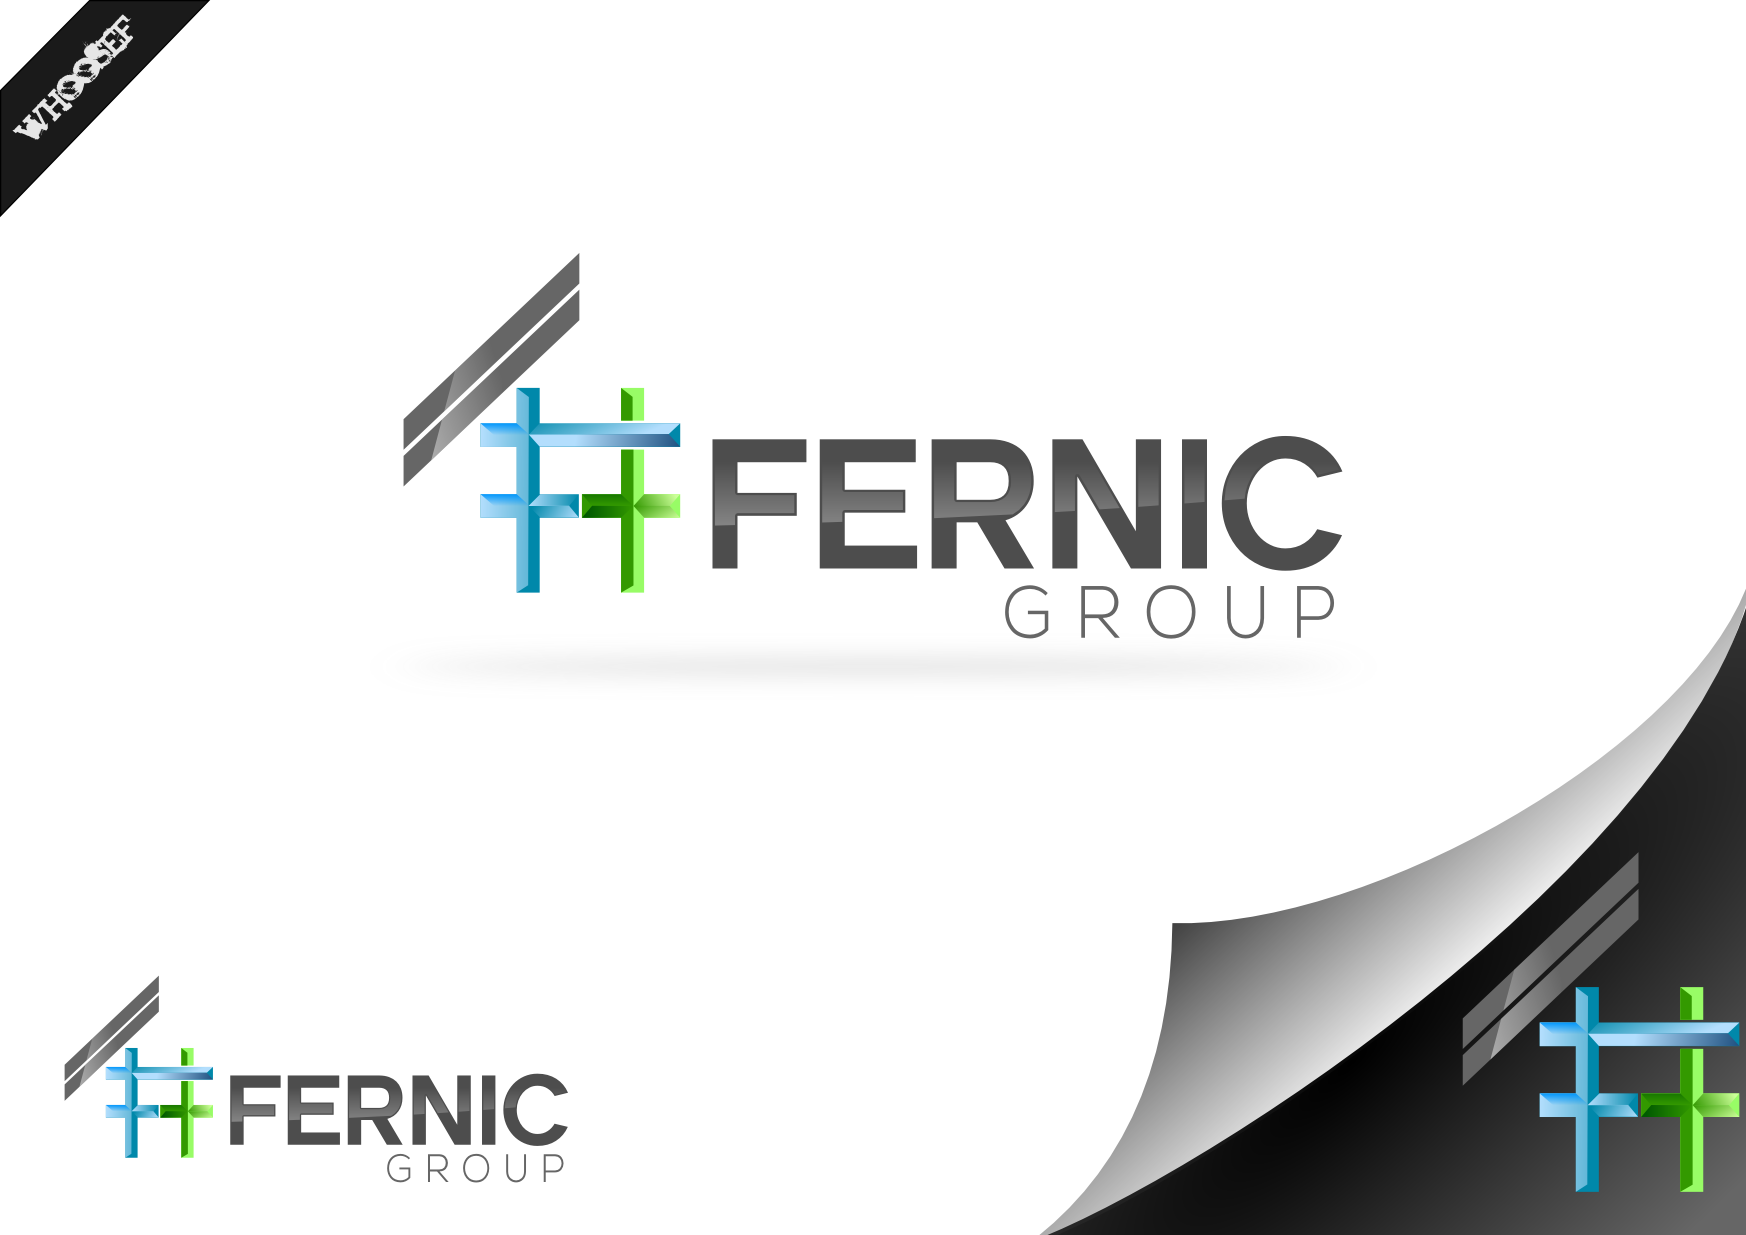 Logo Design by whoosef - Entry No. 65 in the Logo Design Contest Artistic Logo Design for Fernic Goup.